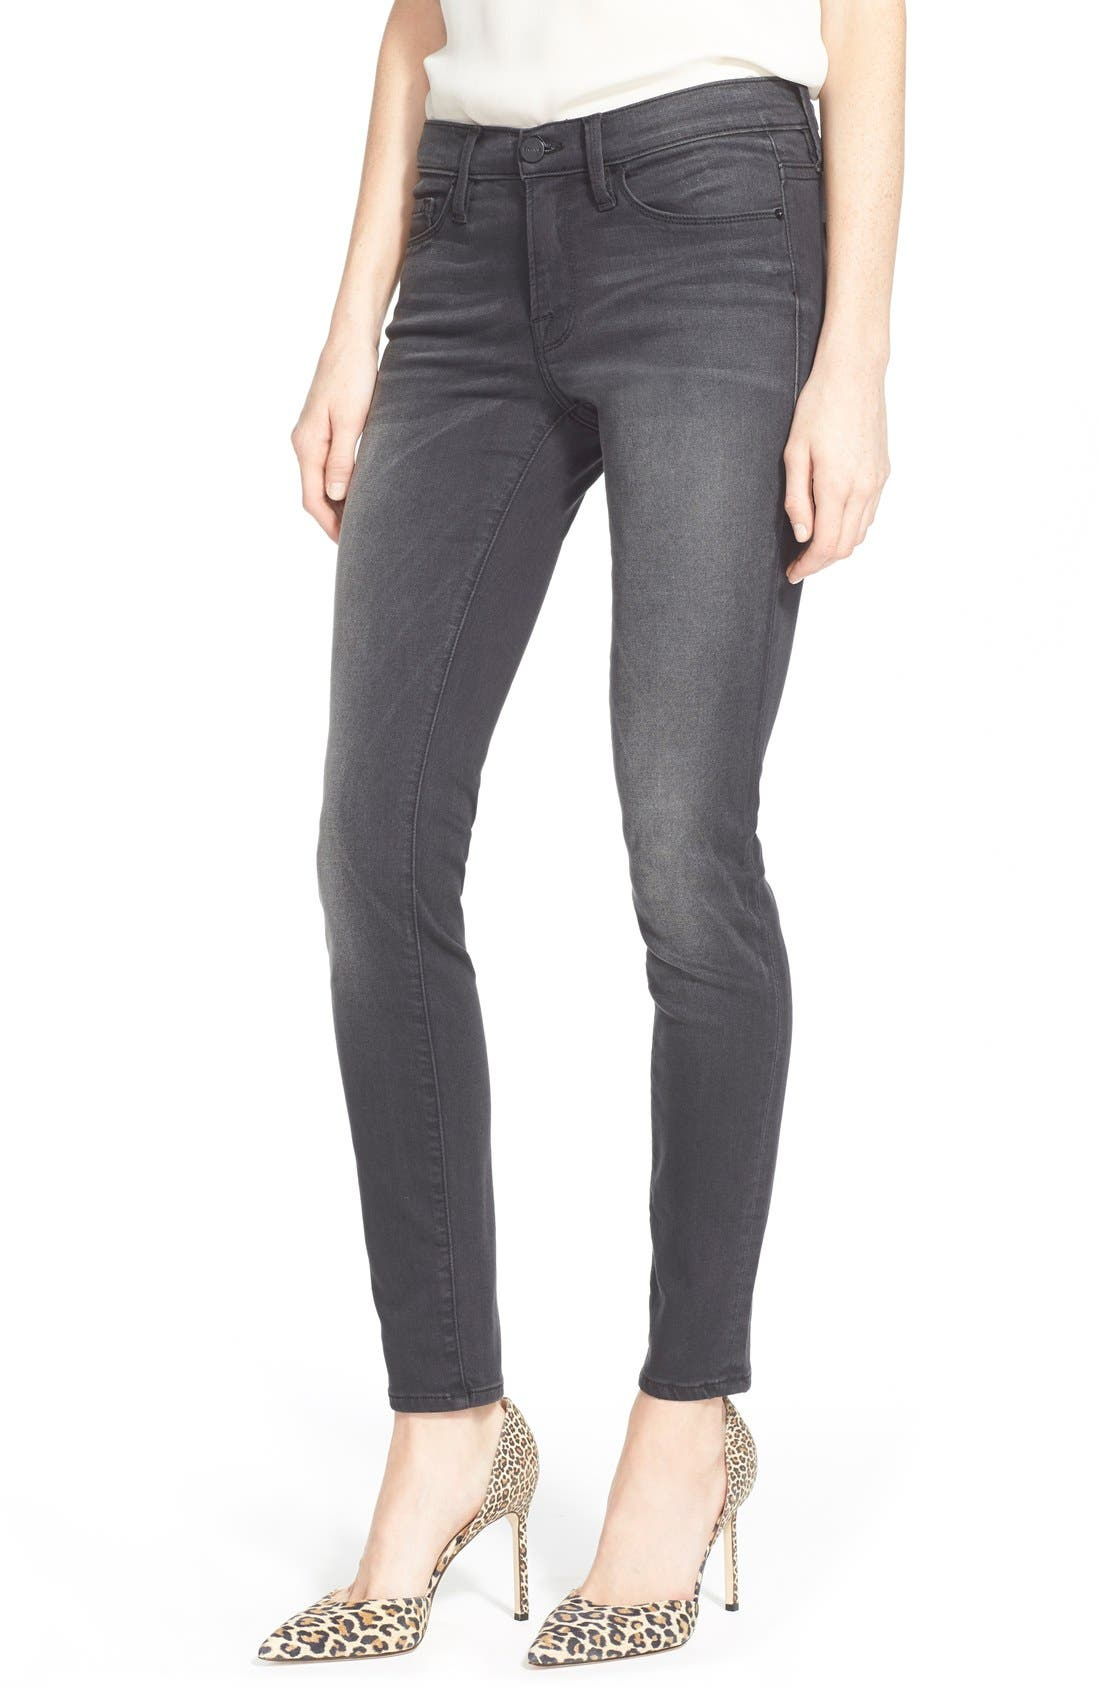 Main Image - FRAME 'Le Skinny' Sateen Skinny Jeans (Knightrider)